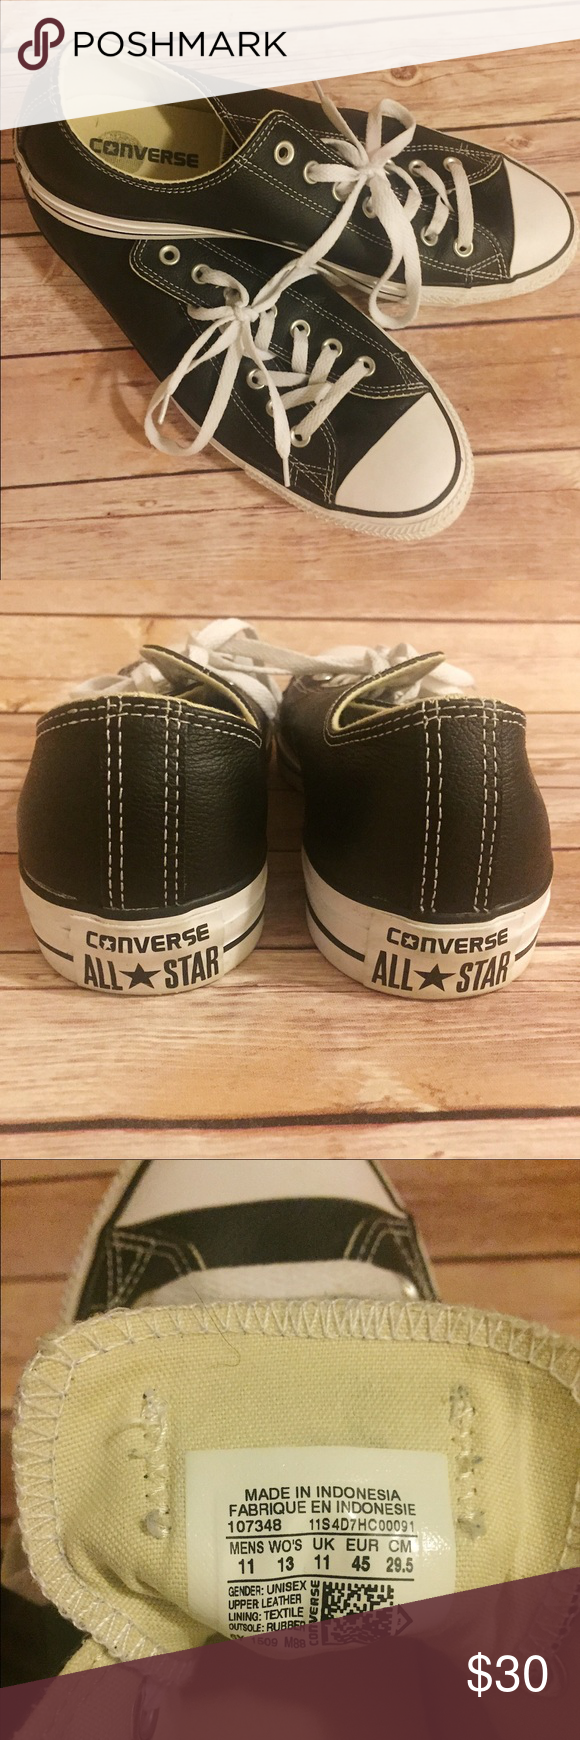 Converse All Star Classics Chuck Taylor Brand new, never worn, black leather low top Converse All Star Classic sneakers, size 11 men's/ 13 women's. The perfect Chuck Taylors to complete any look! Price negotiable, make an offer! NWOT Converse Shoes Sneakers